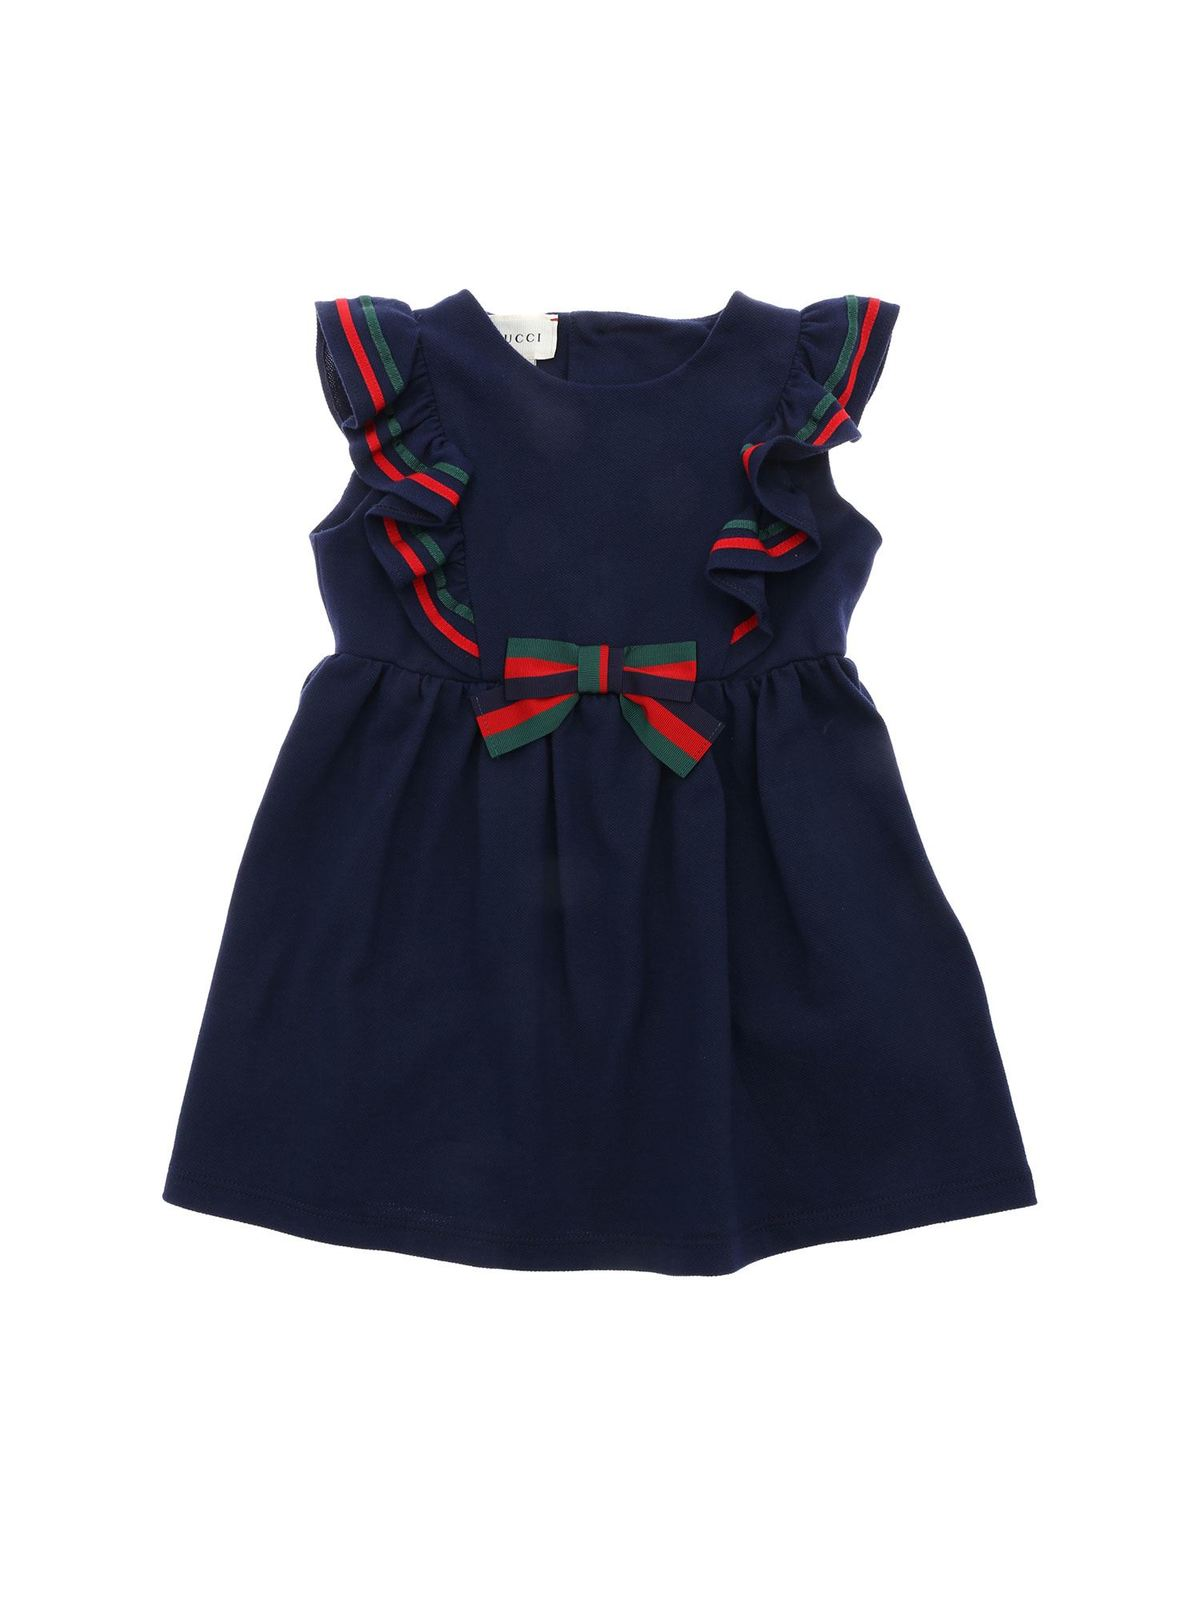 Gucci Kids' Childrens Cotton Piiquet Dress With Bow In Blue